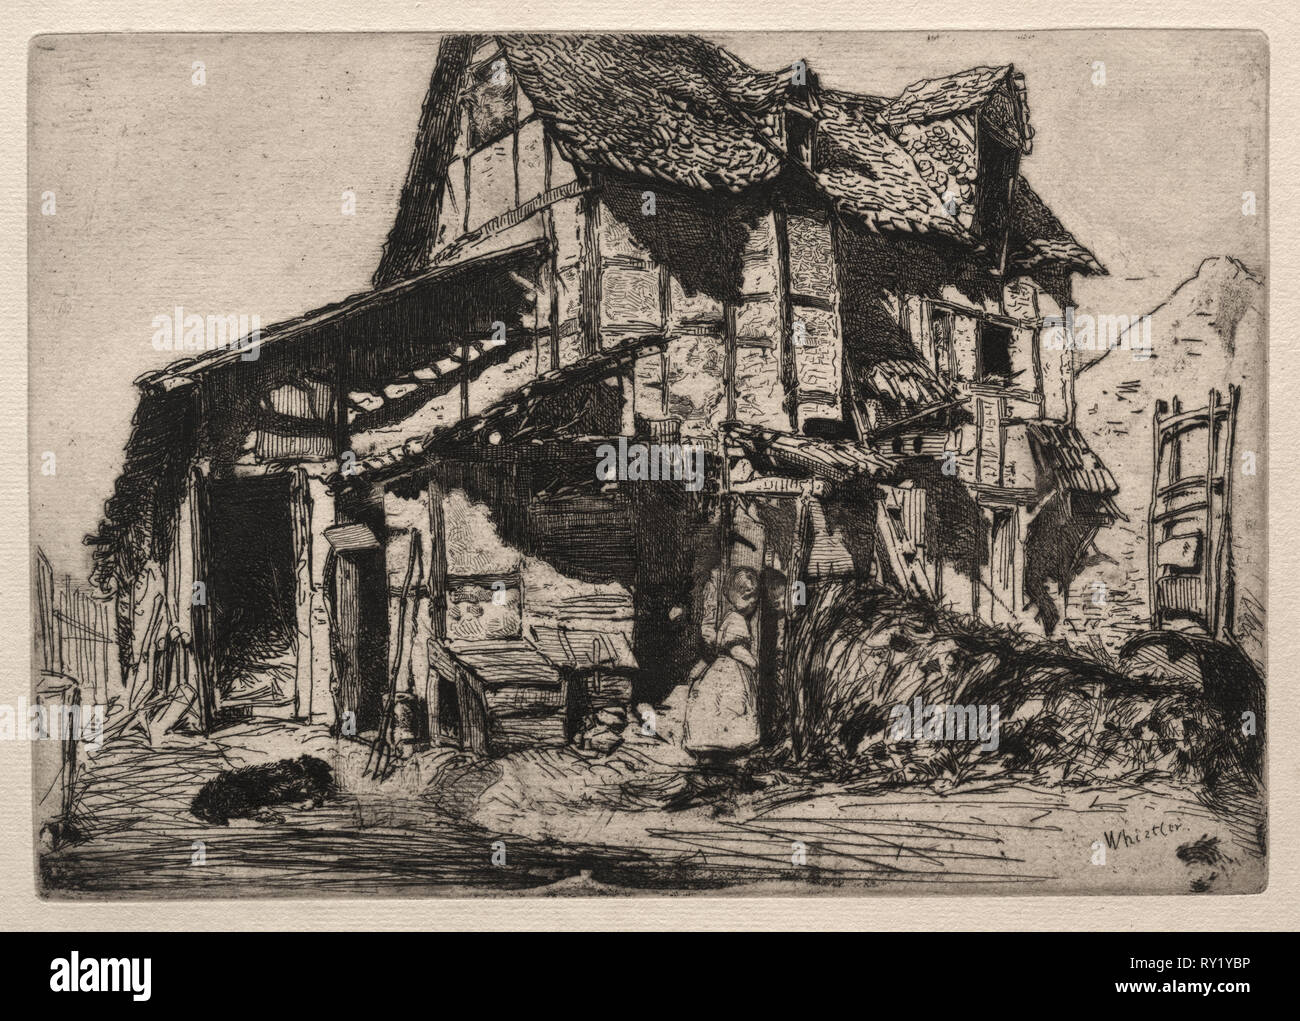 An Unsafe Tenement. James McNeill Whistler (American, 1834-1903). Etching - Stock Image